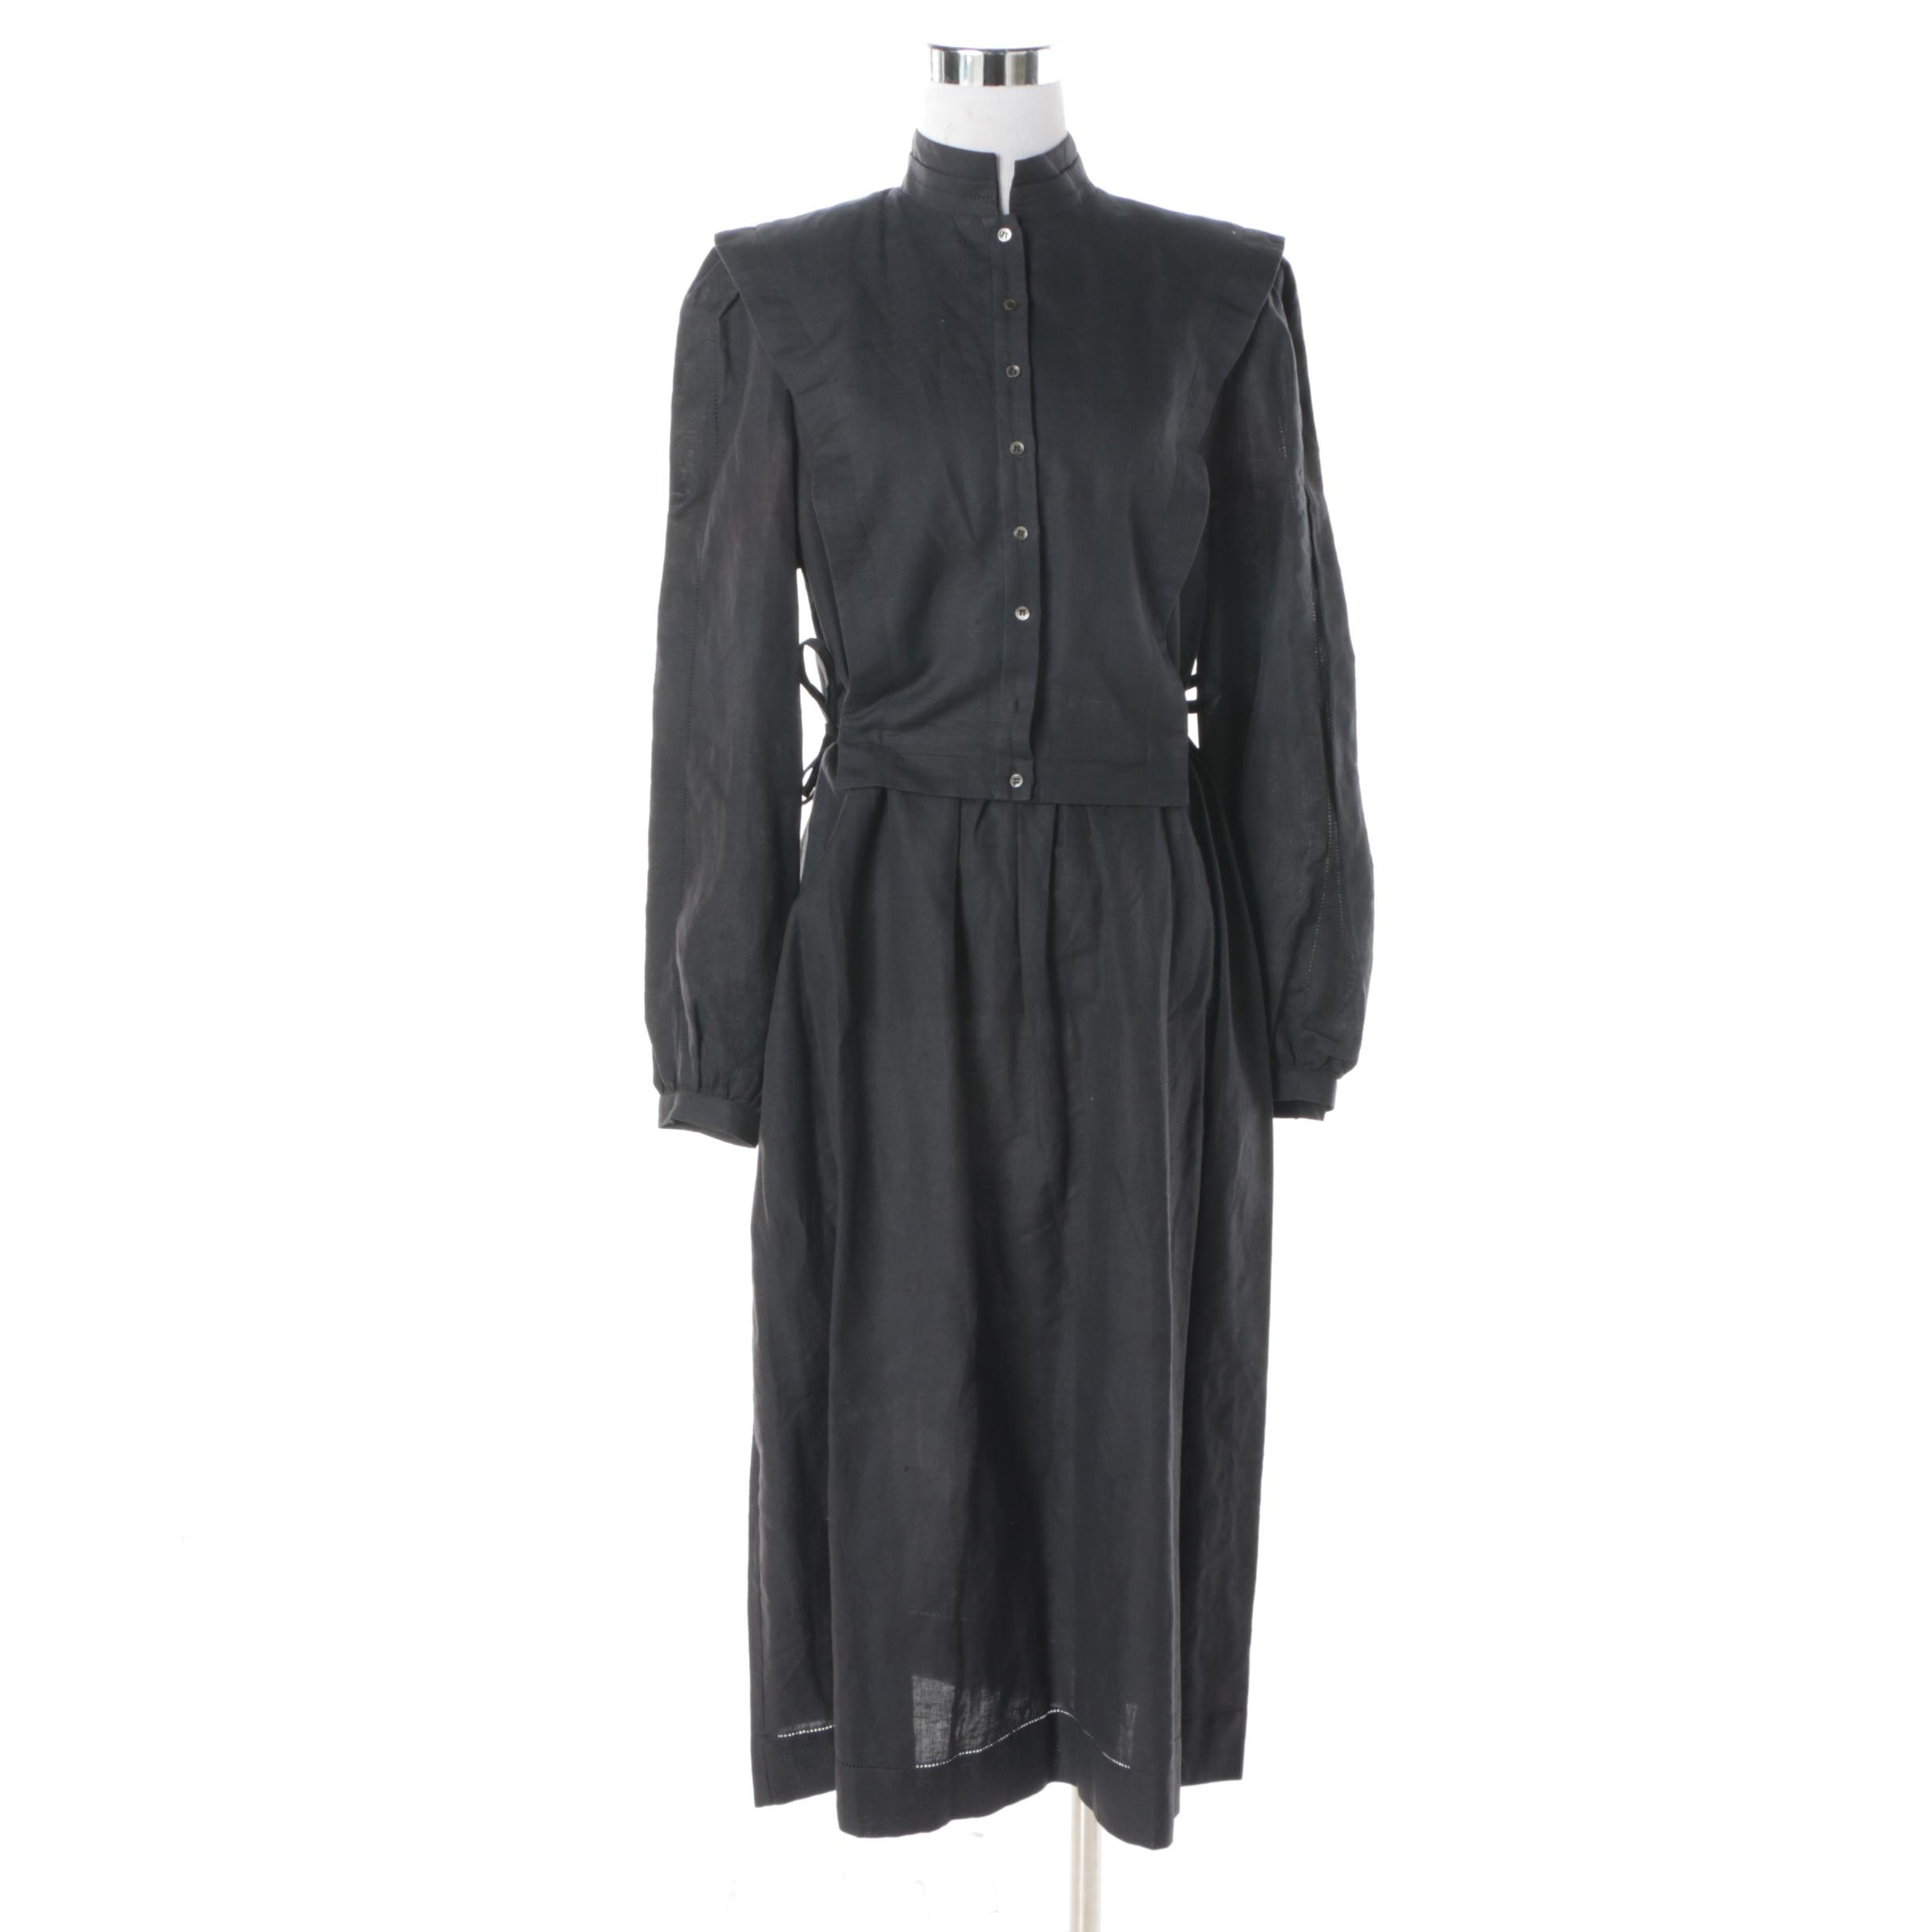 Vintage Nicole Miller Black Linen/Cotton Blend Dress